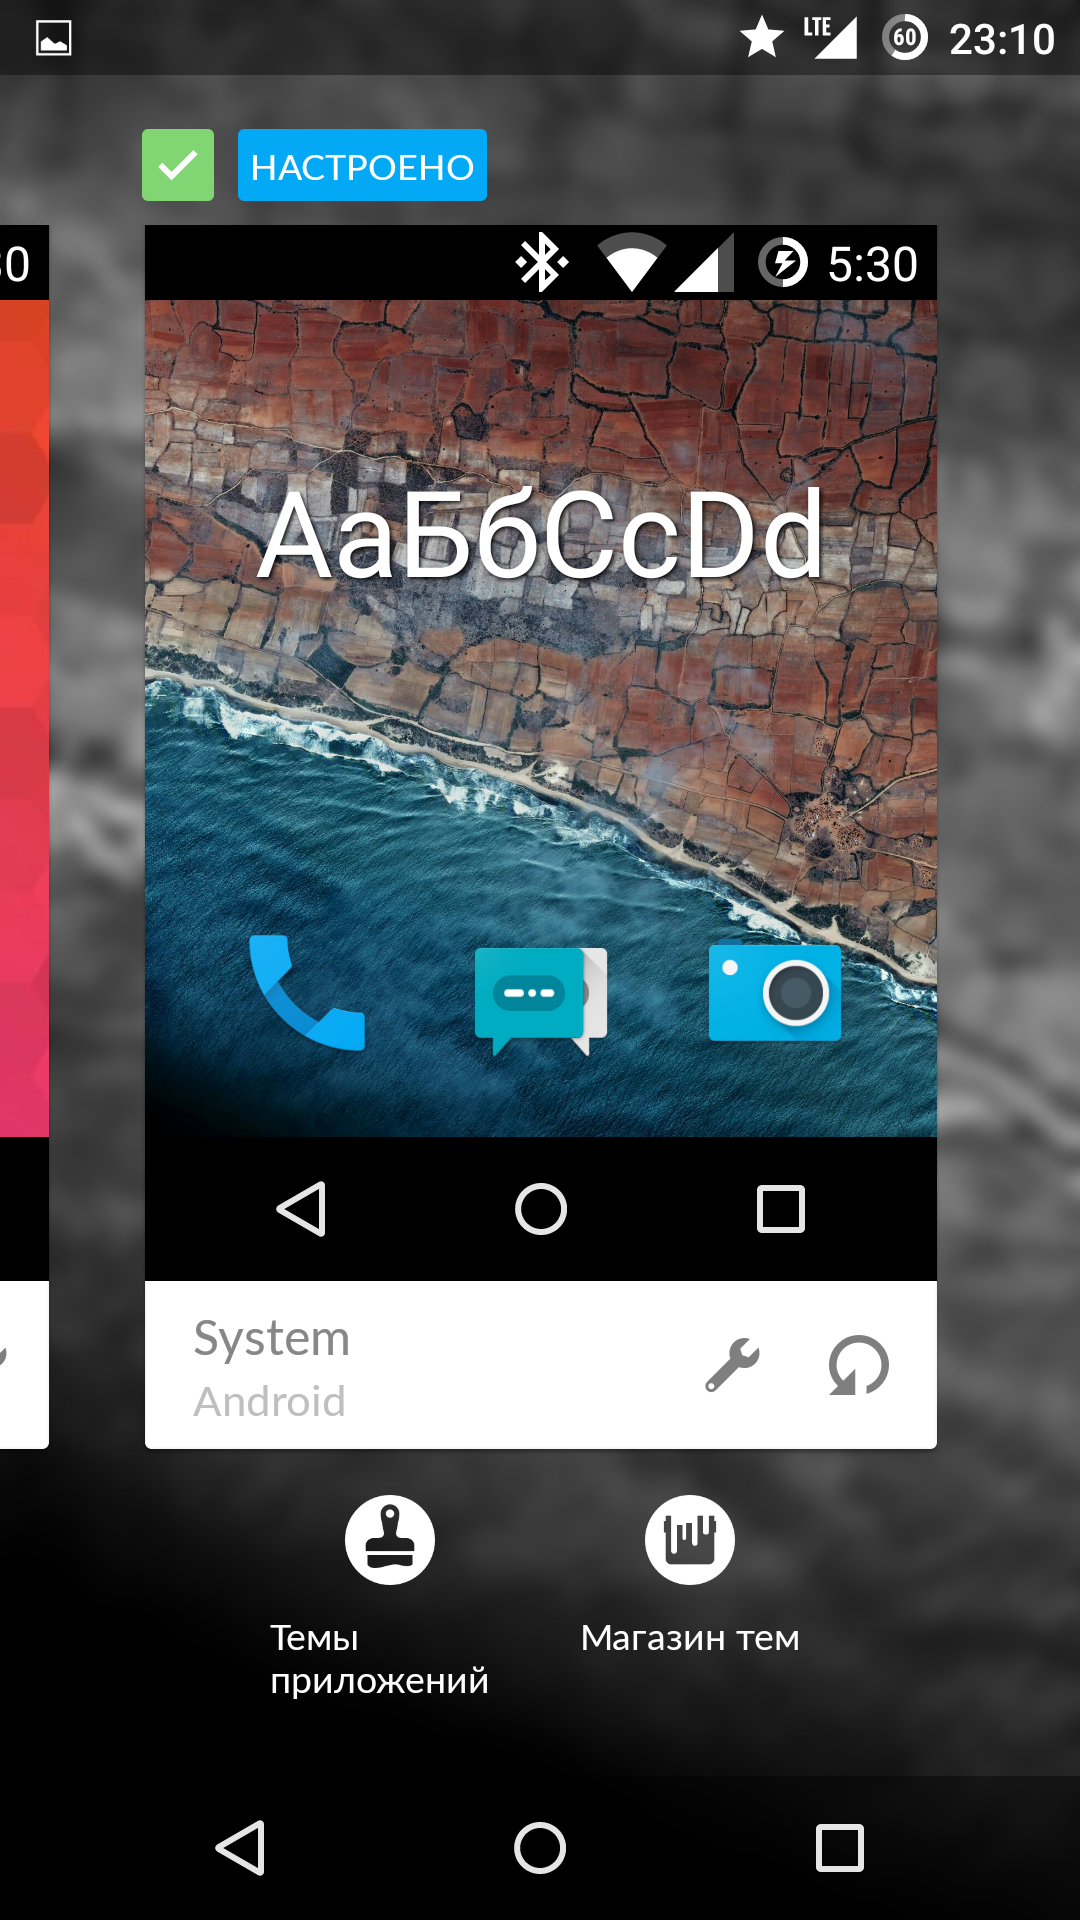 Полный обзор Cyanogen OS 12.1 (Android 5.1.1 Lollipop) - 10